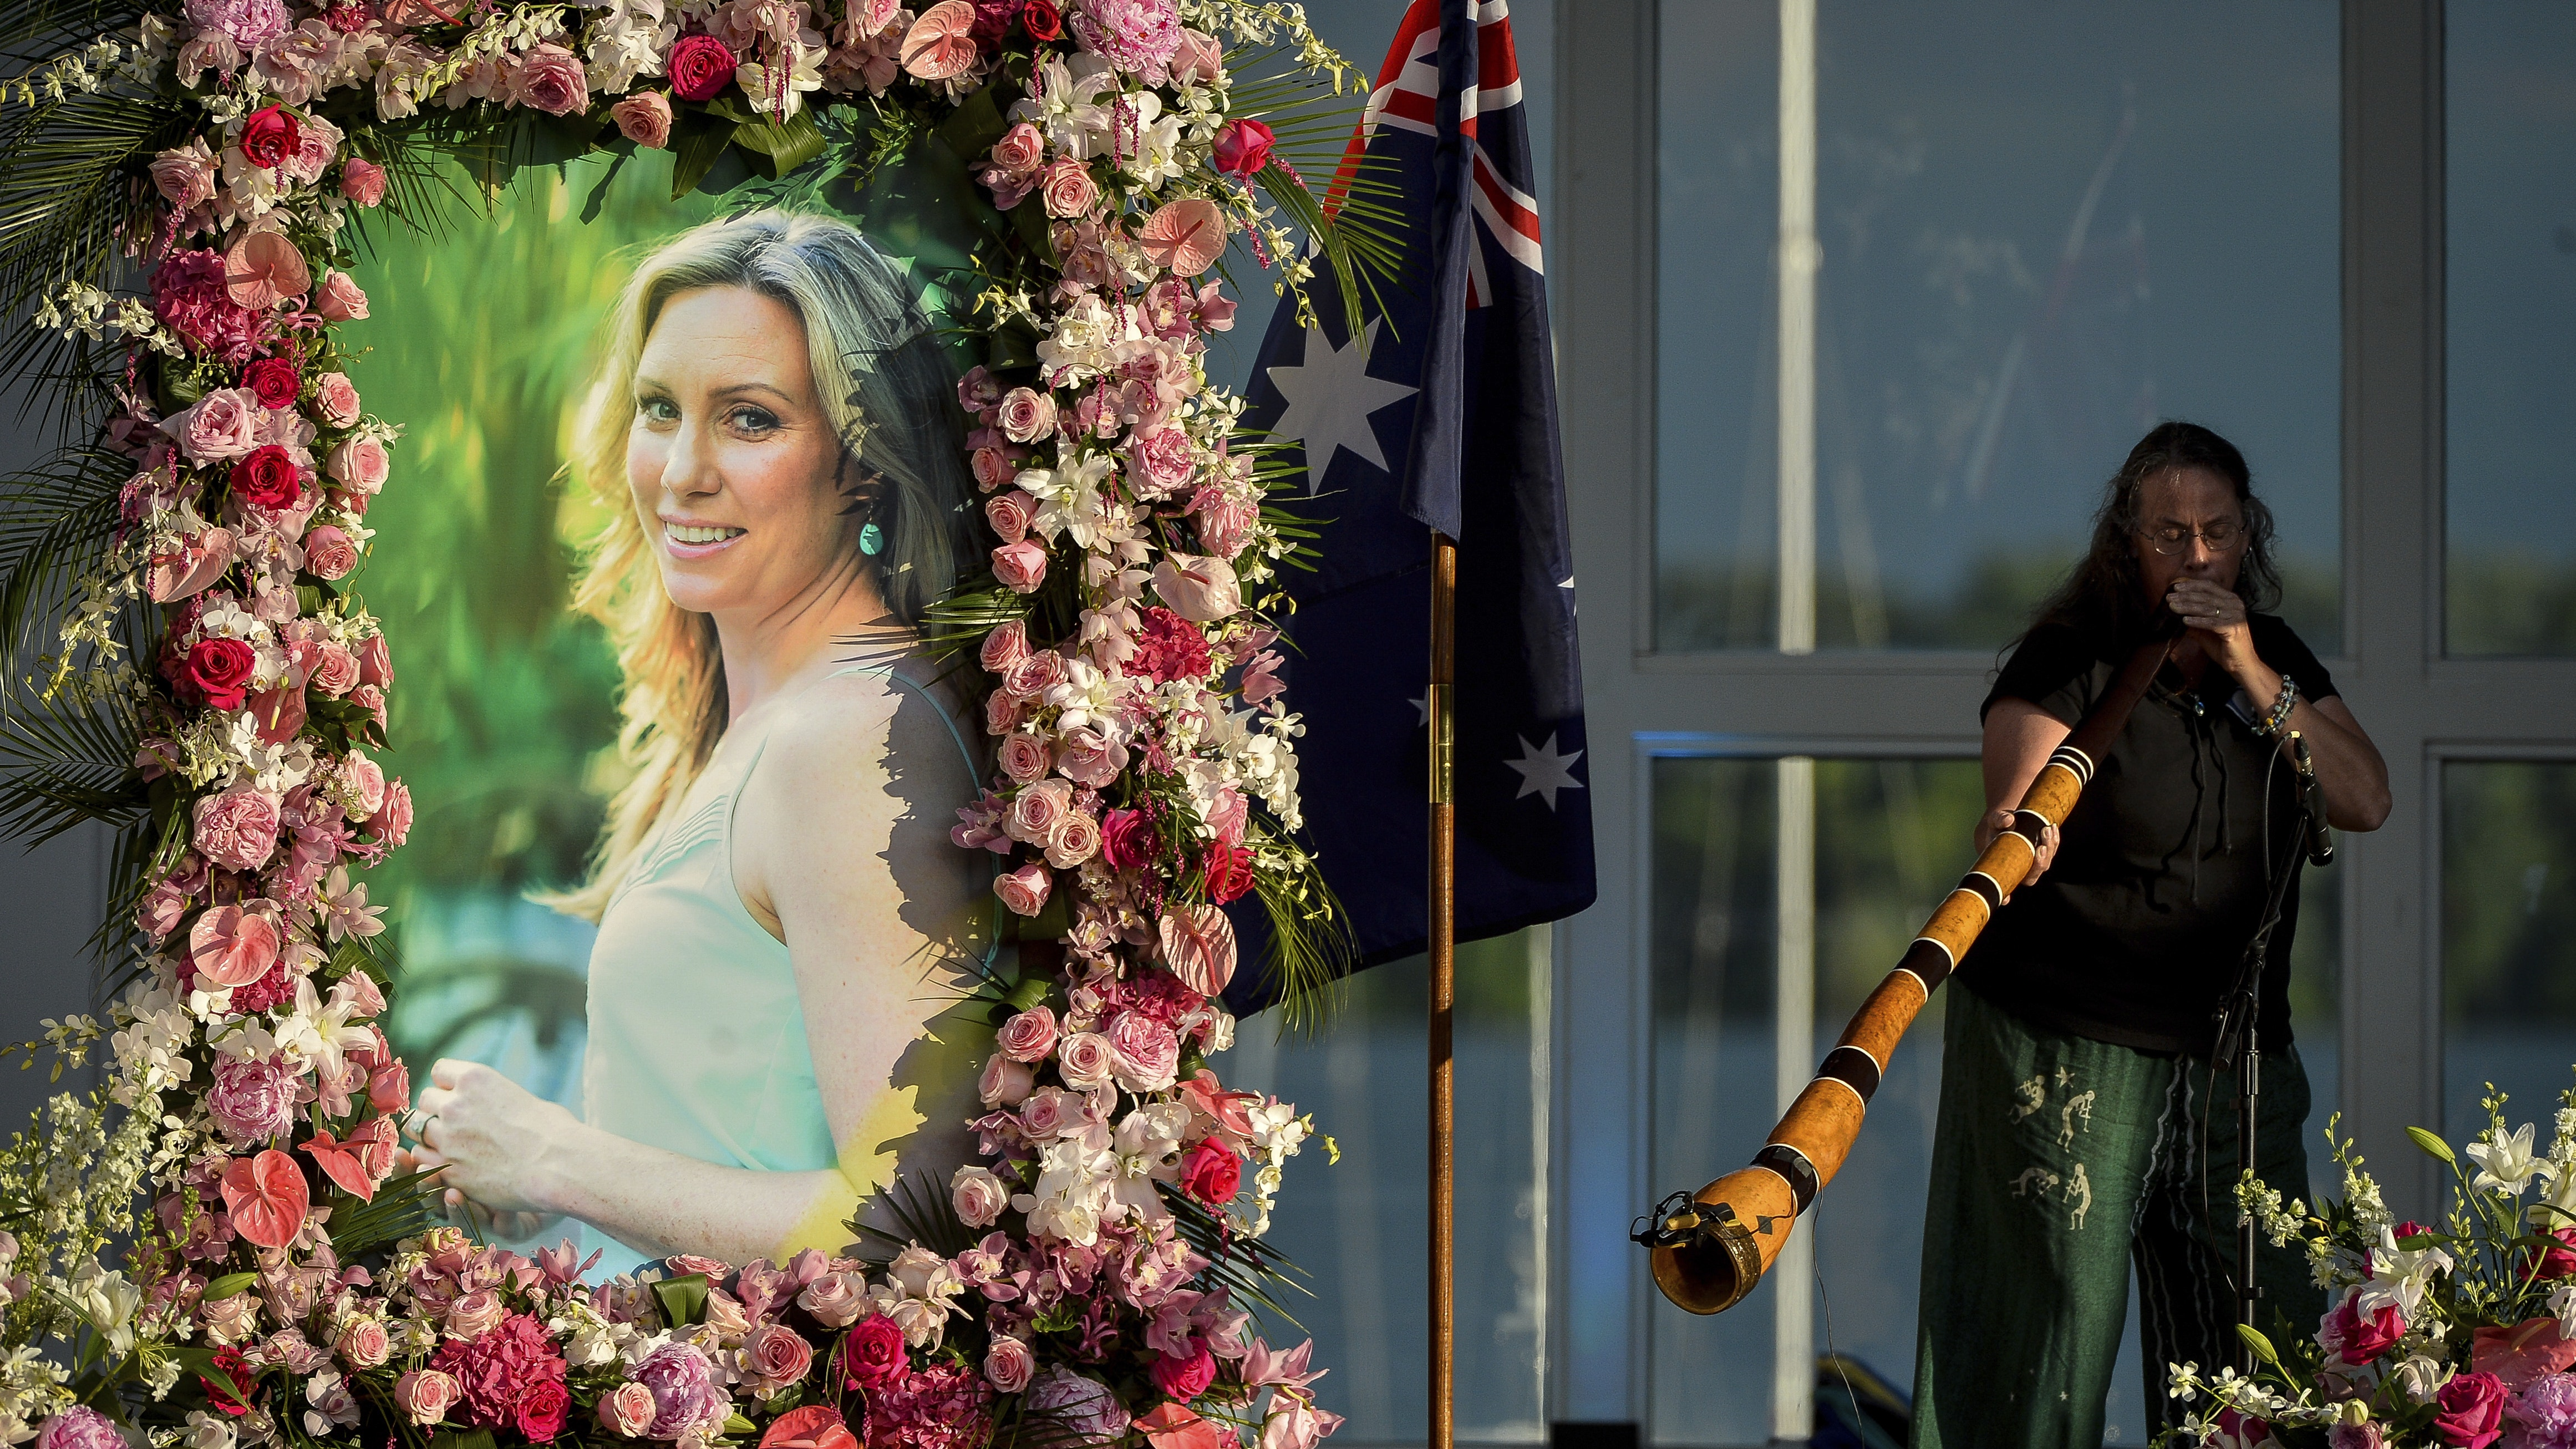 Justine Damond Killing: Officer Charged with Murder